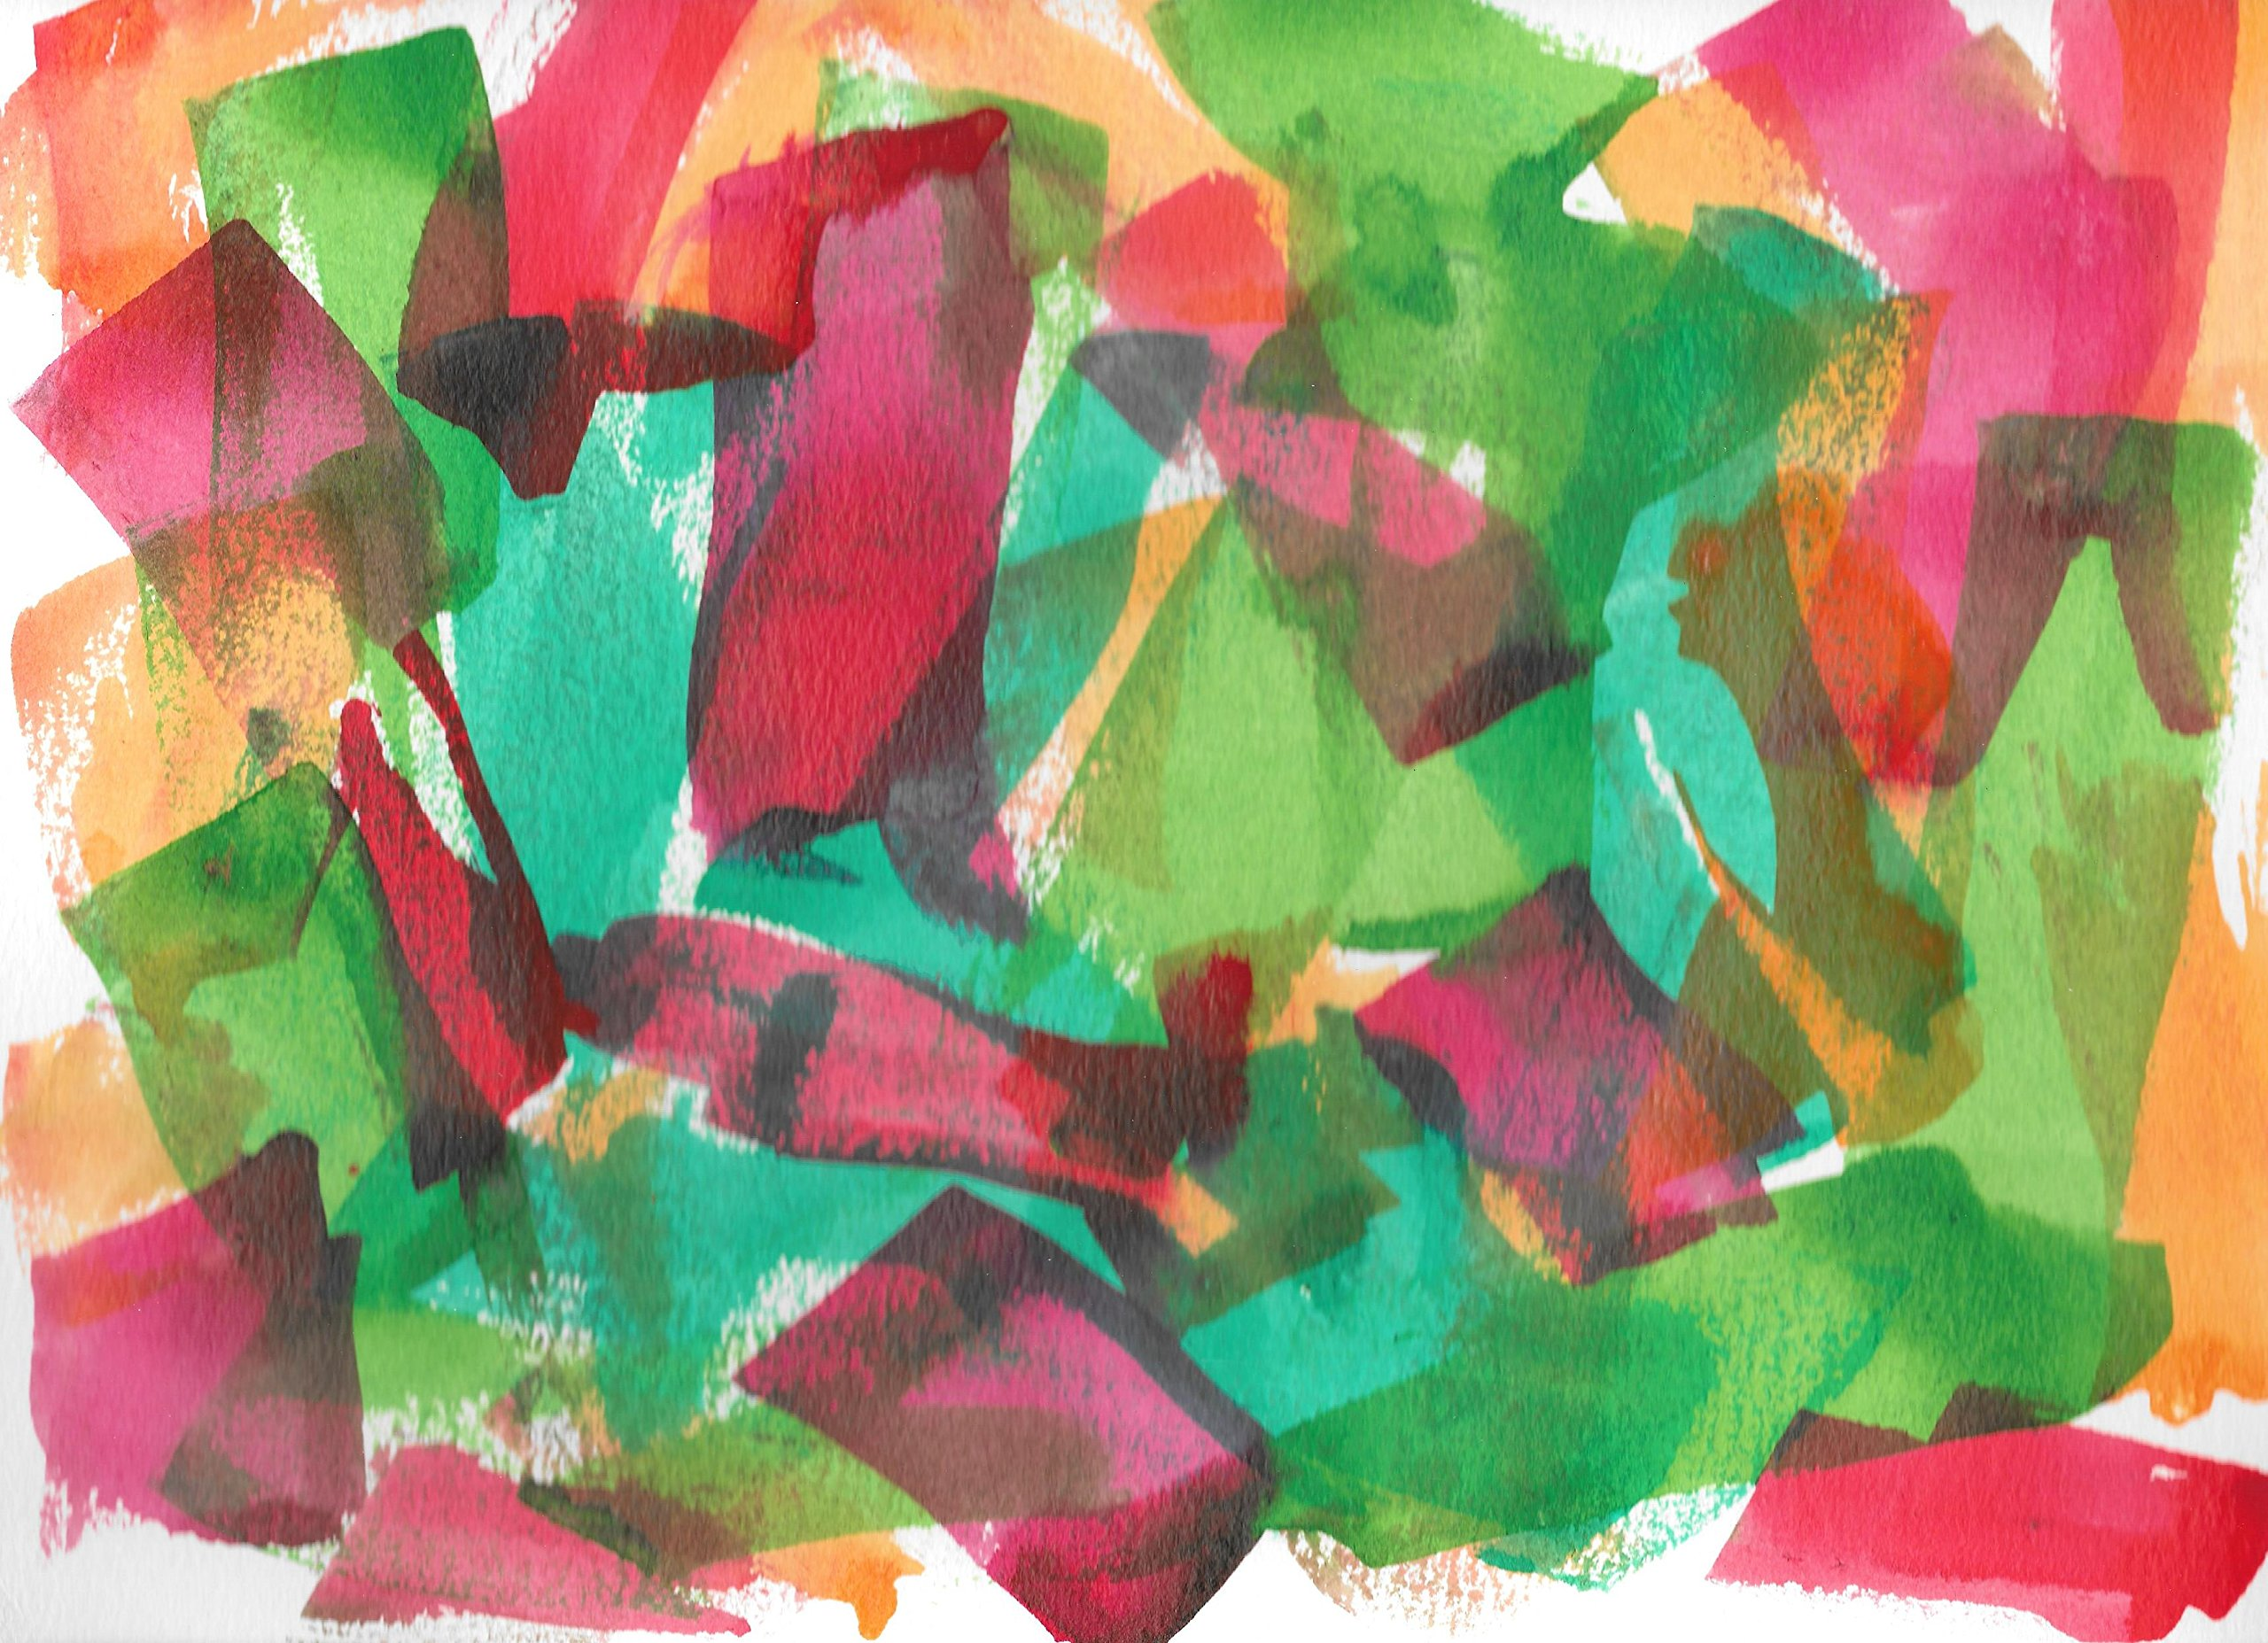 Original Painting - Abstract 2015-97 - 9'' x 12'' India Inks on Watercolor Paper